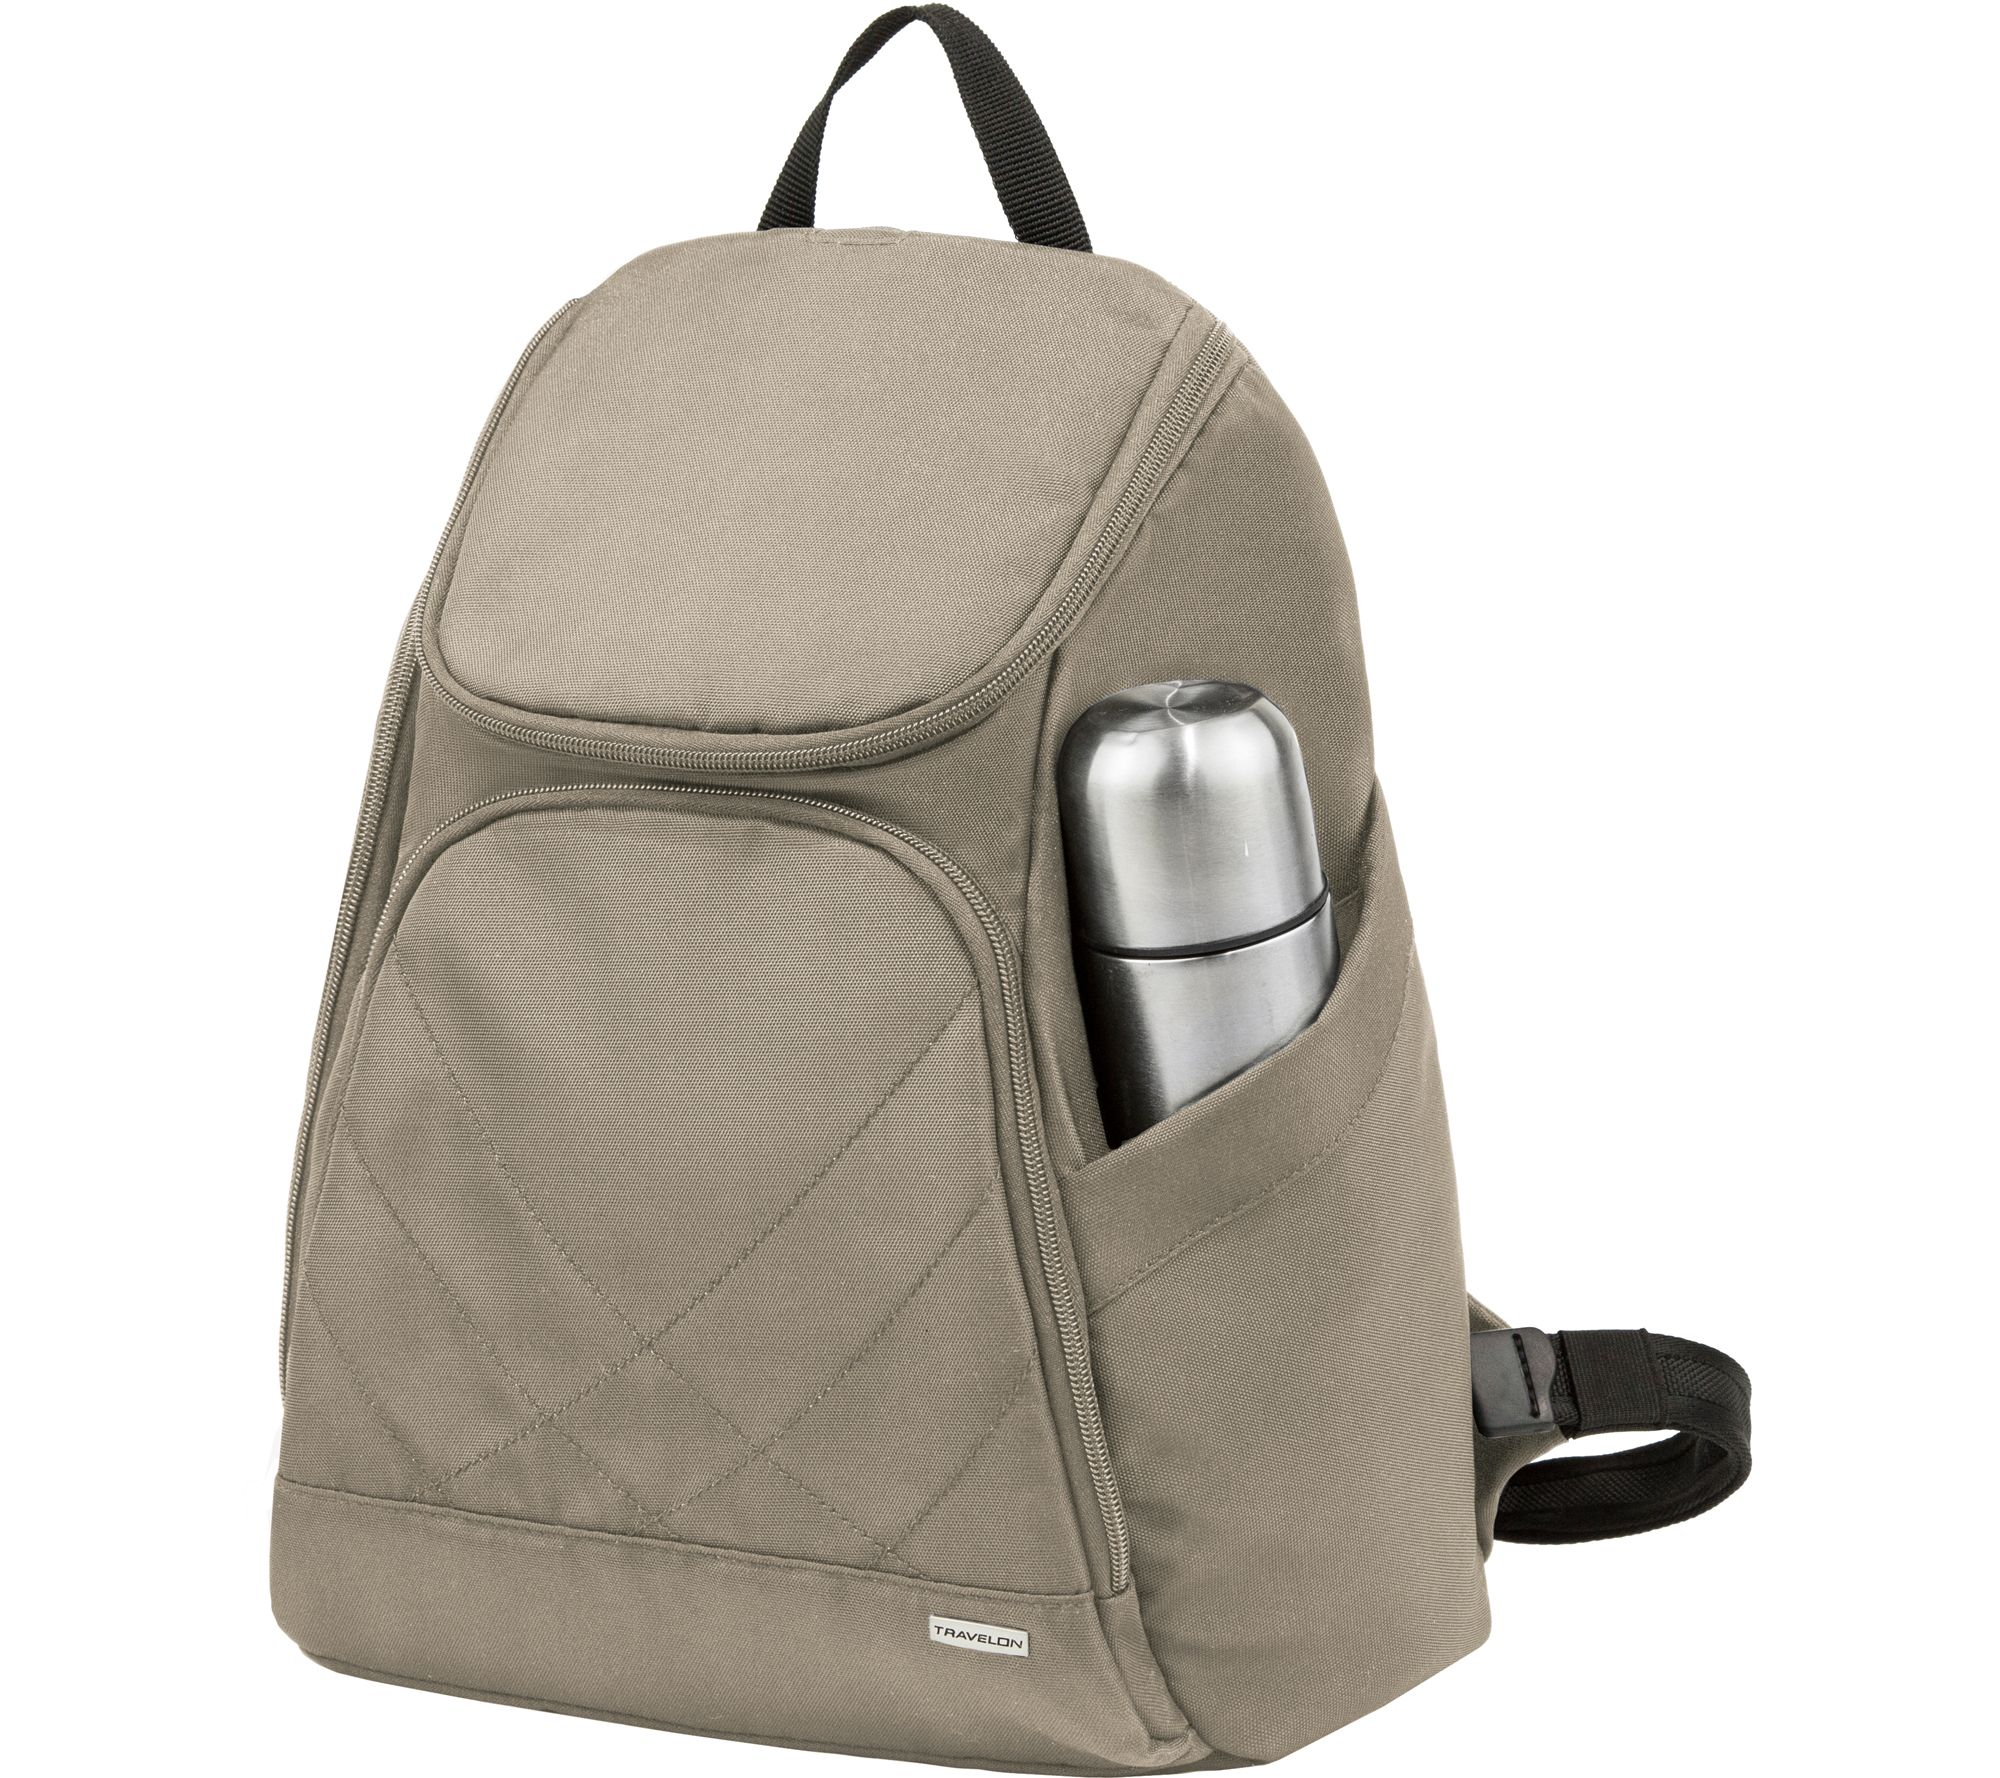 5a443db50043 Travelon Anti-Theft Classic Backpack - Page 1 — QVC.com